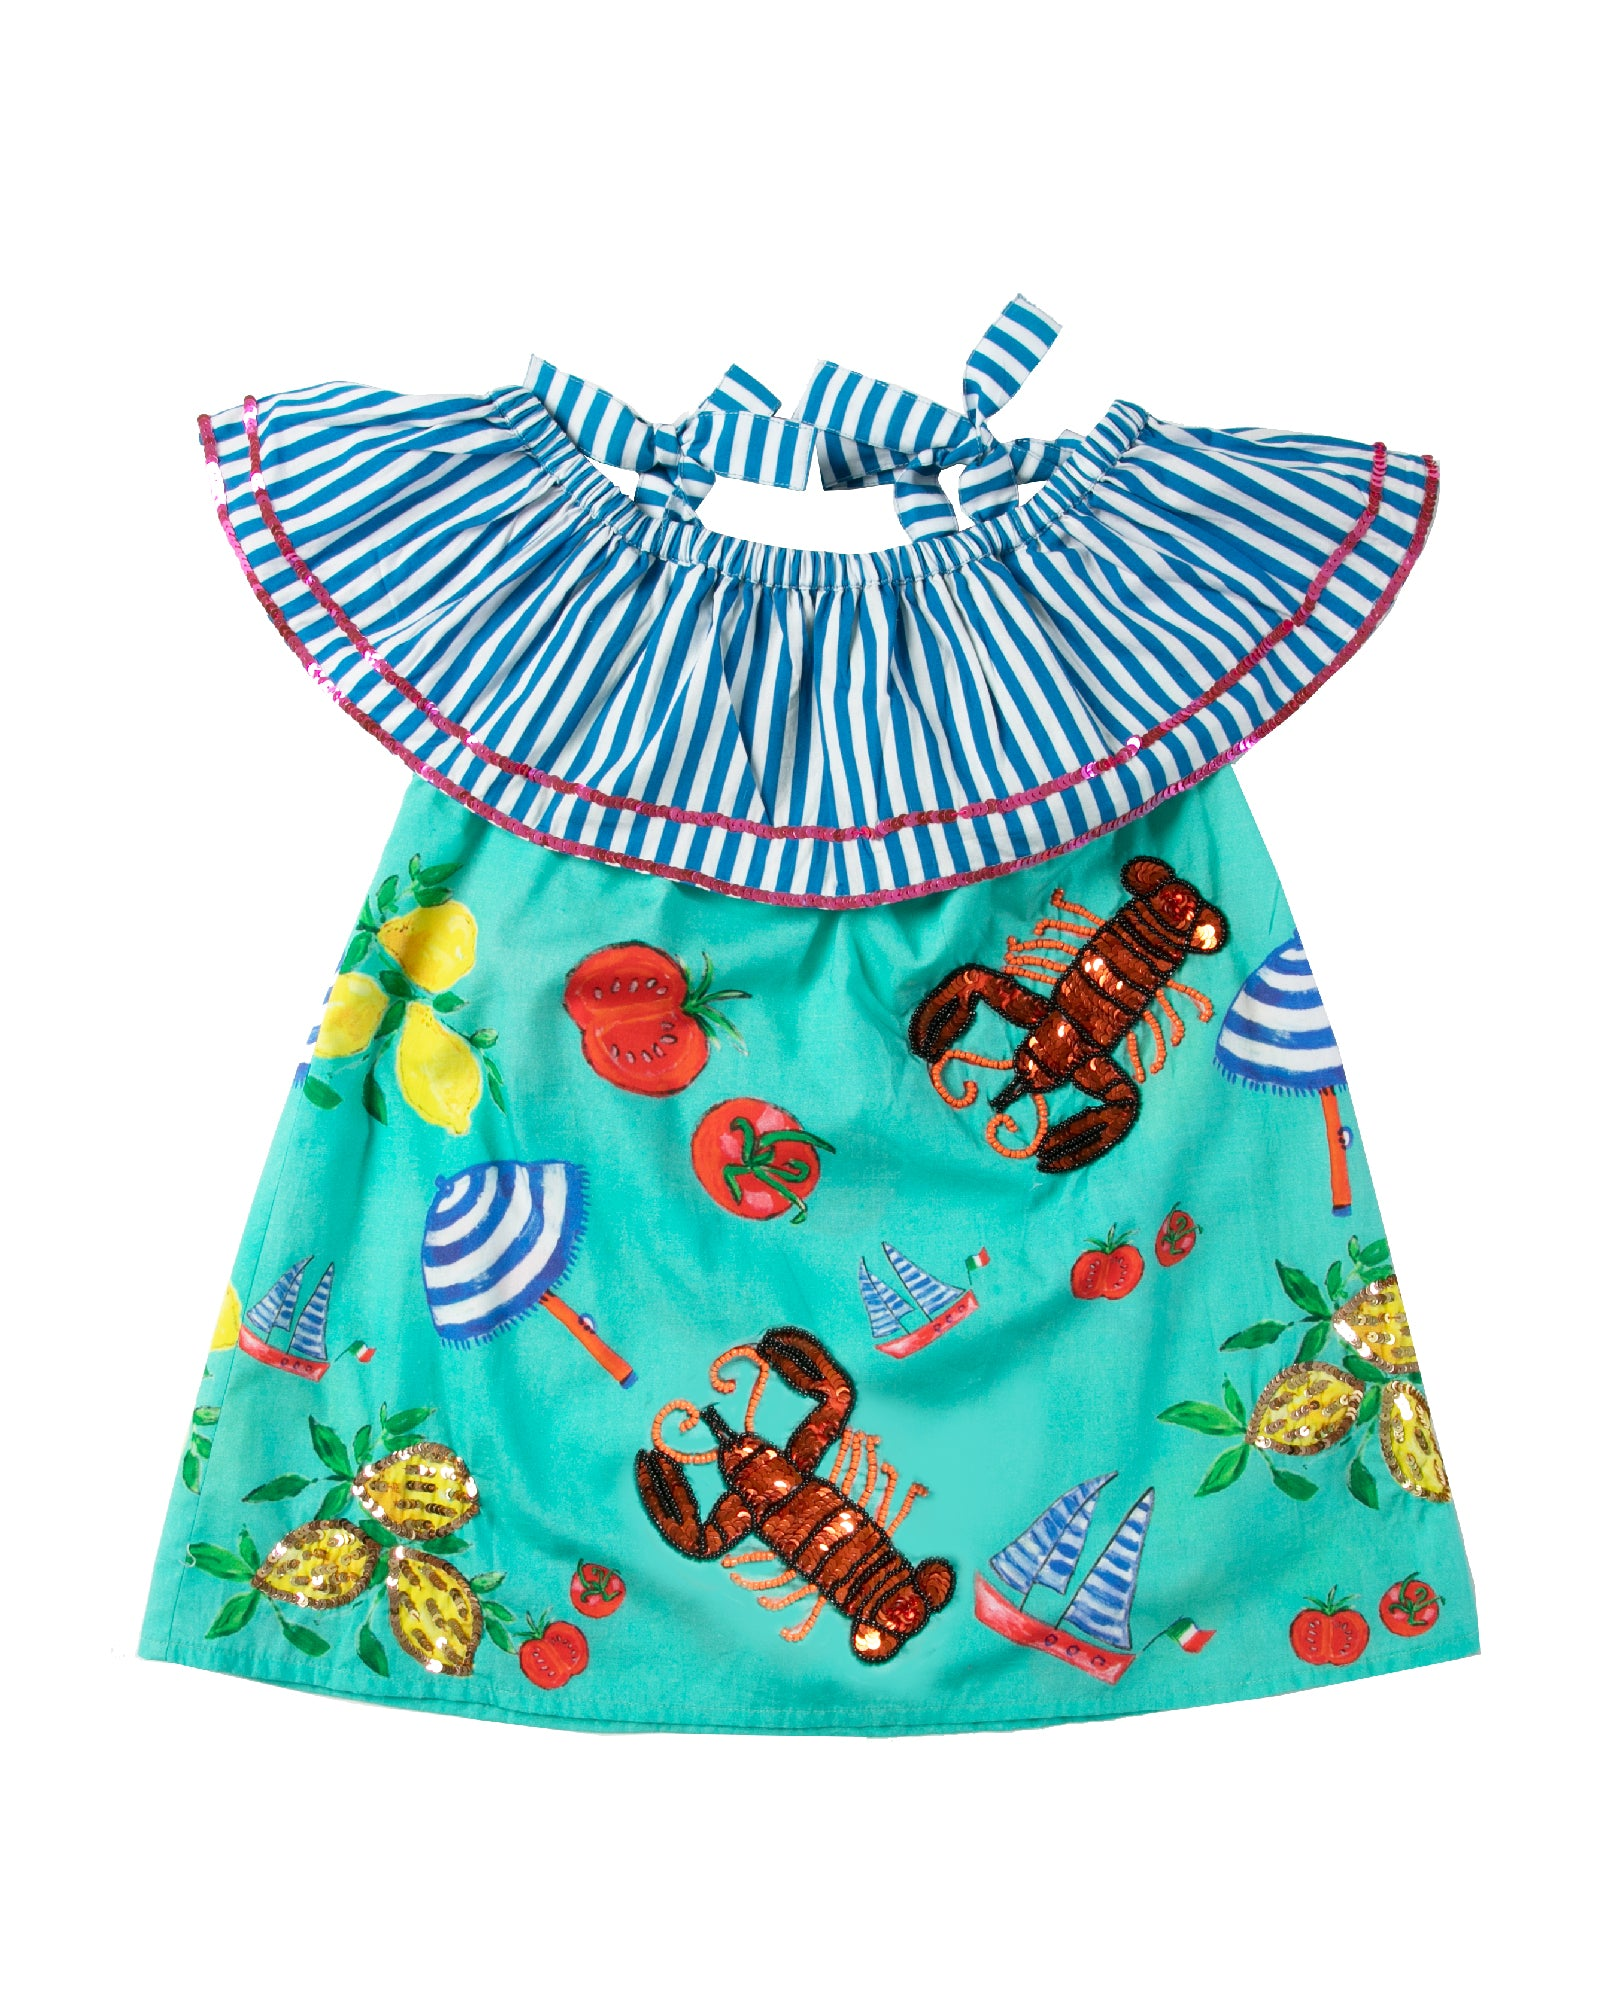 The Spiaggia OTS Dress by Bonita Bambino